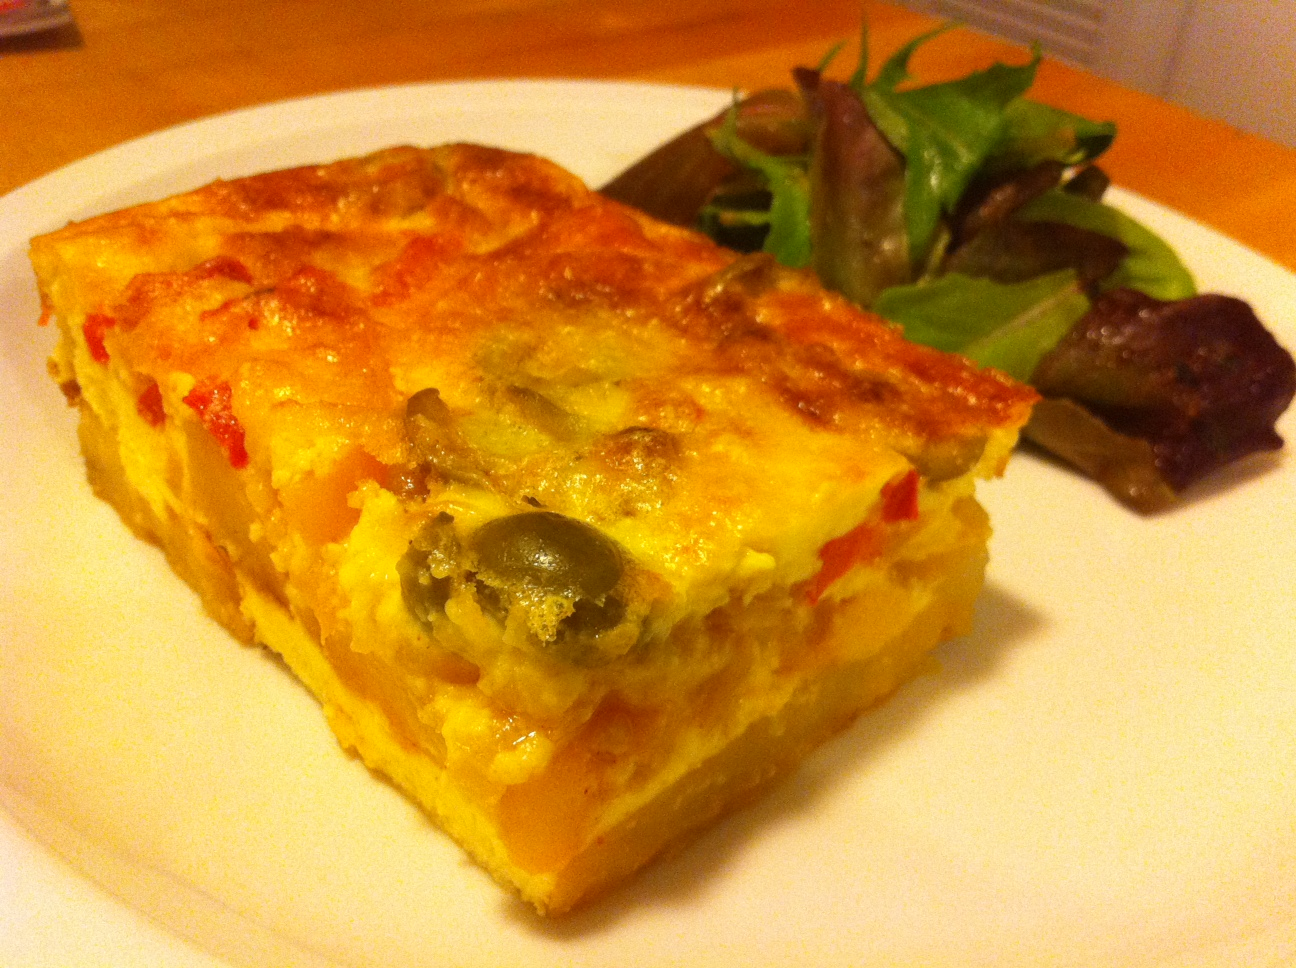 ... Simple Joys from Table to Life: Moosewood Restaurant Spanish Frittata